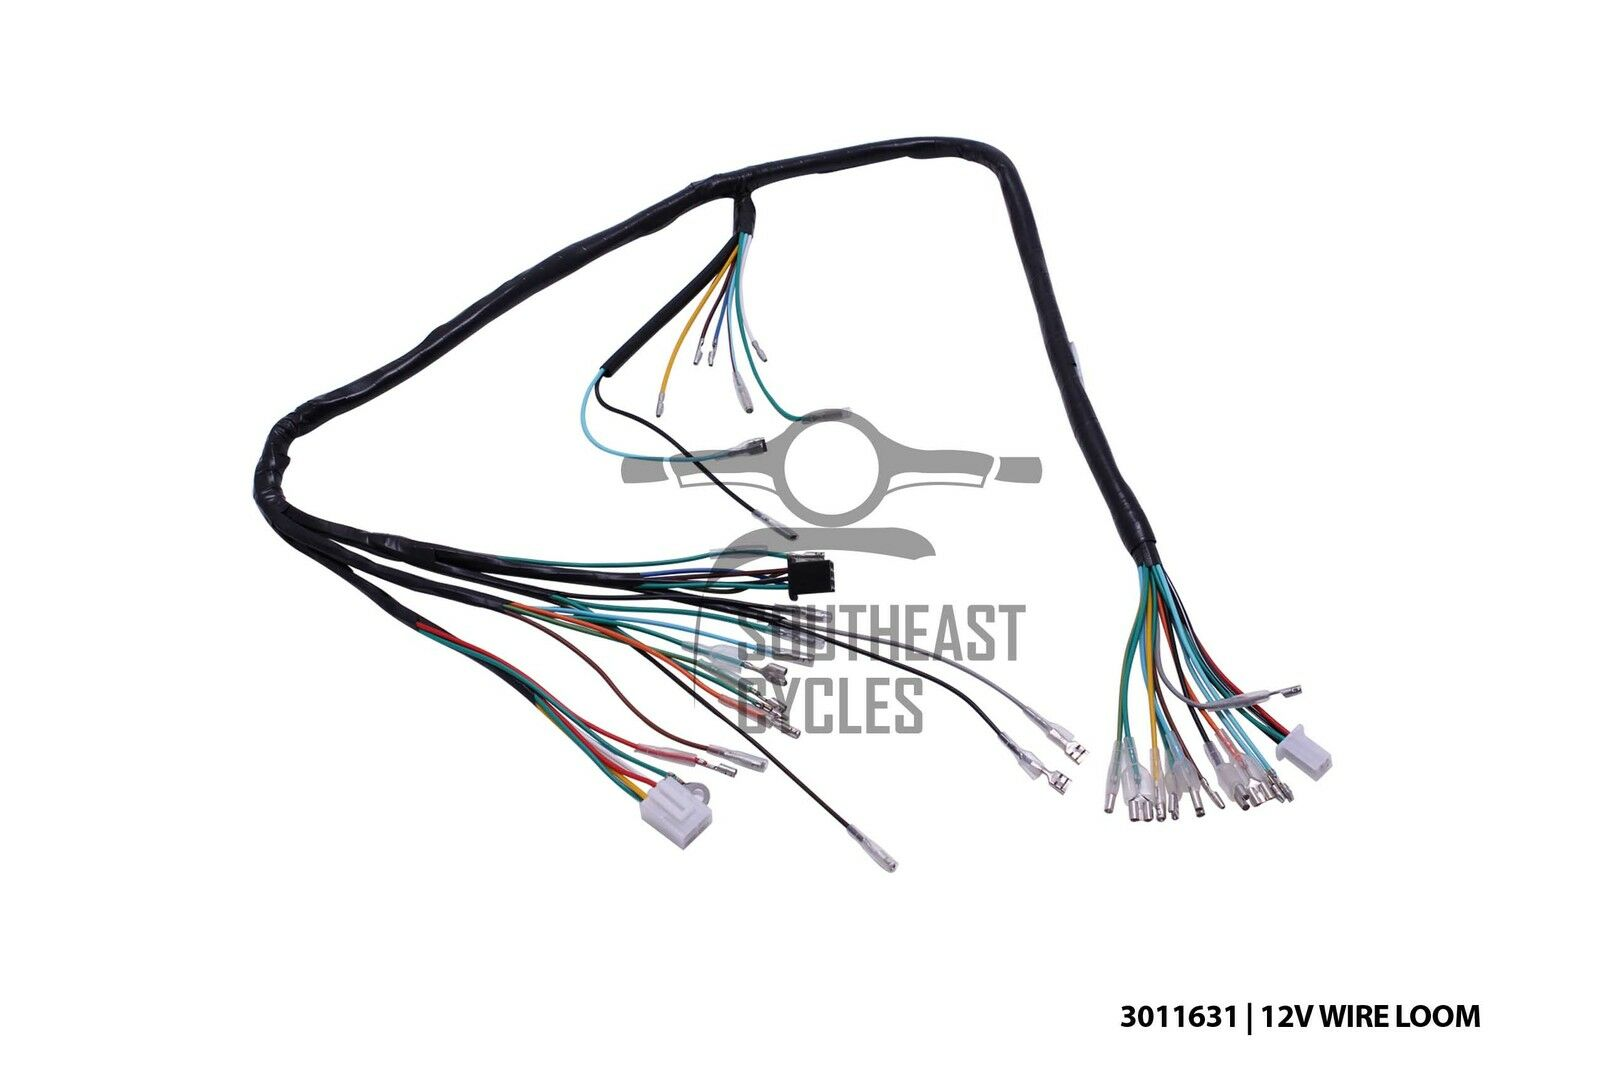 12v Complete Wire Harness Loom For Honda Cub C50 C70 Passport C90 12v Cdi